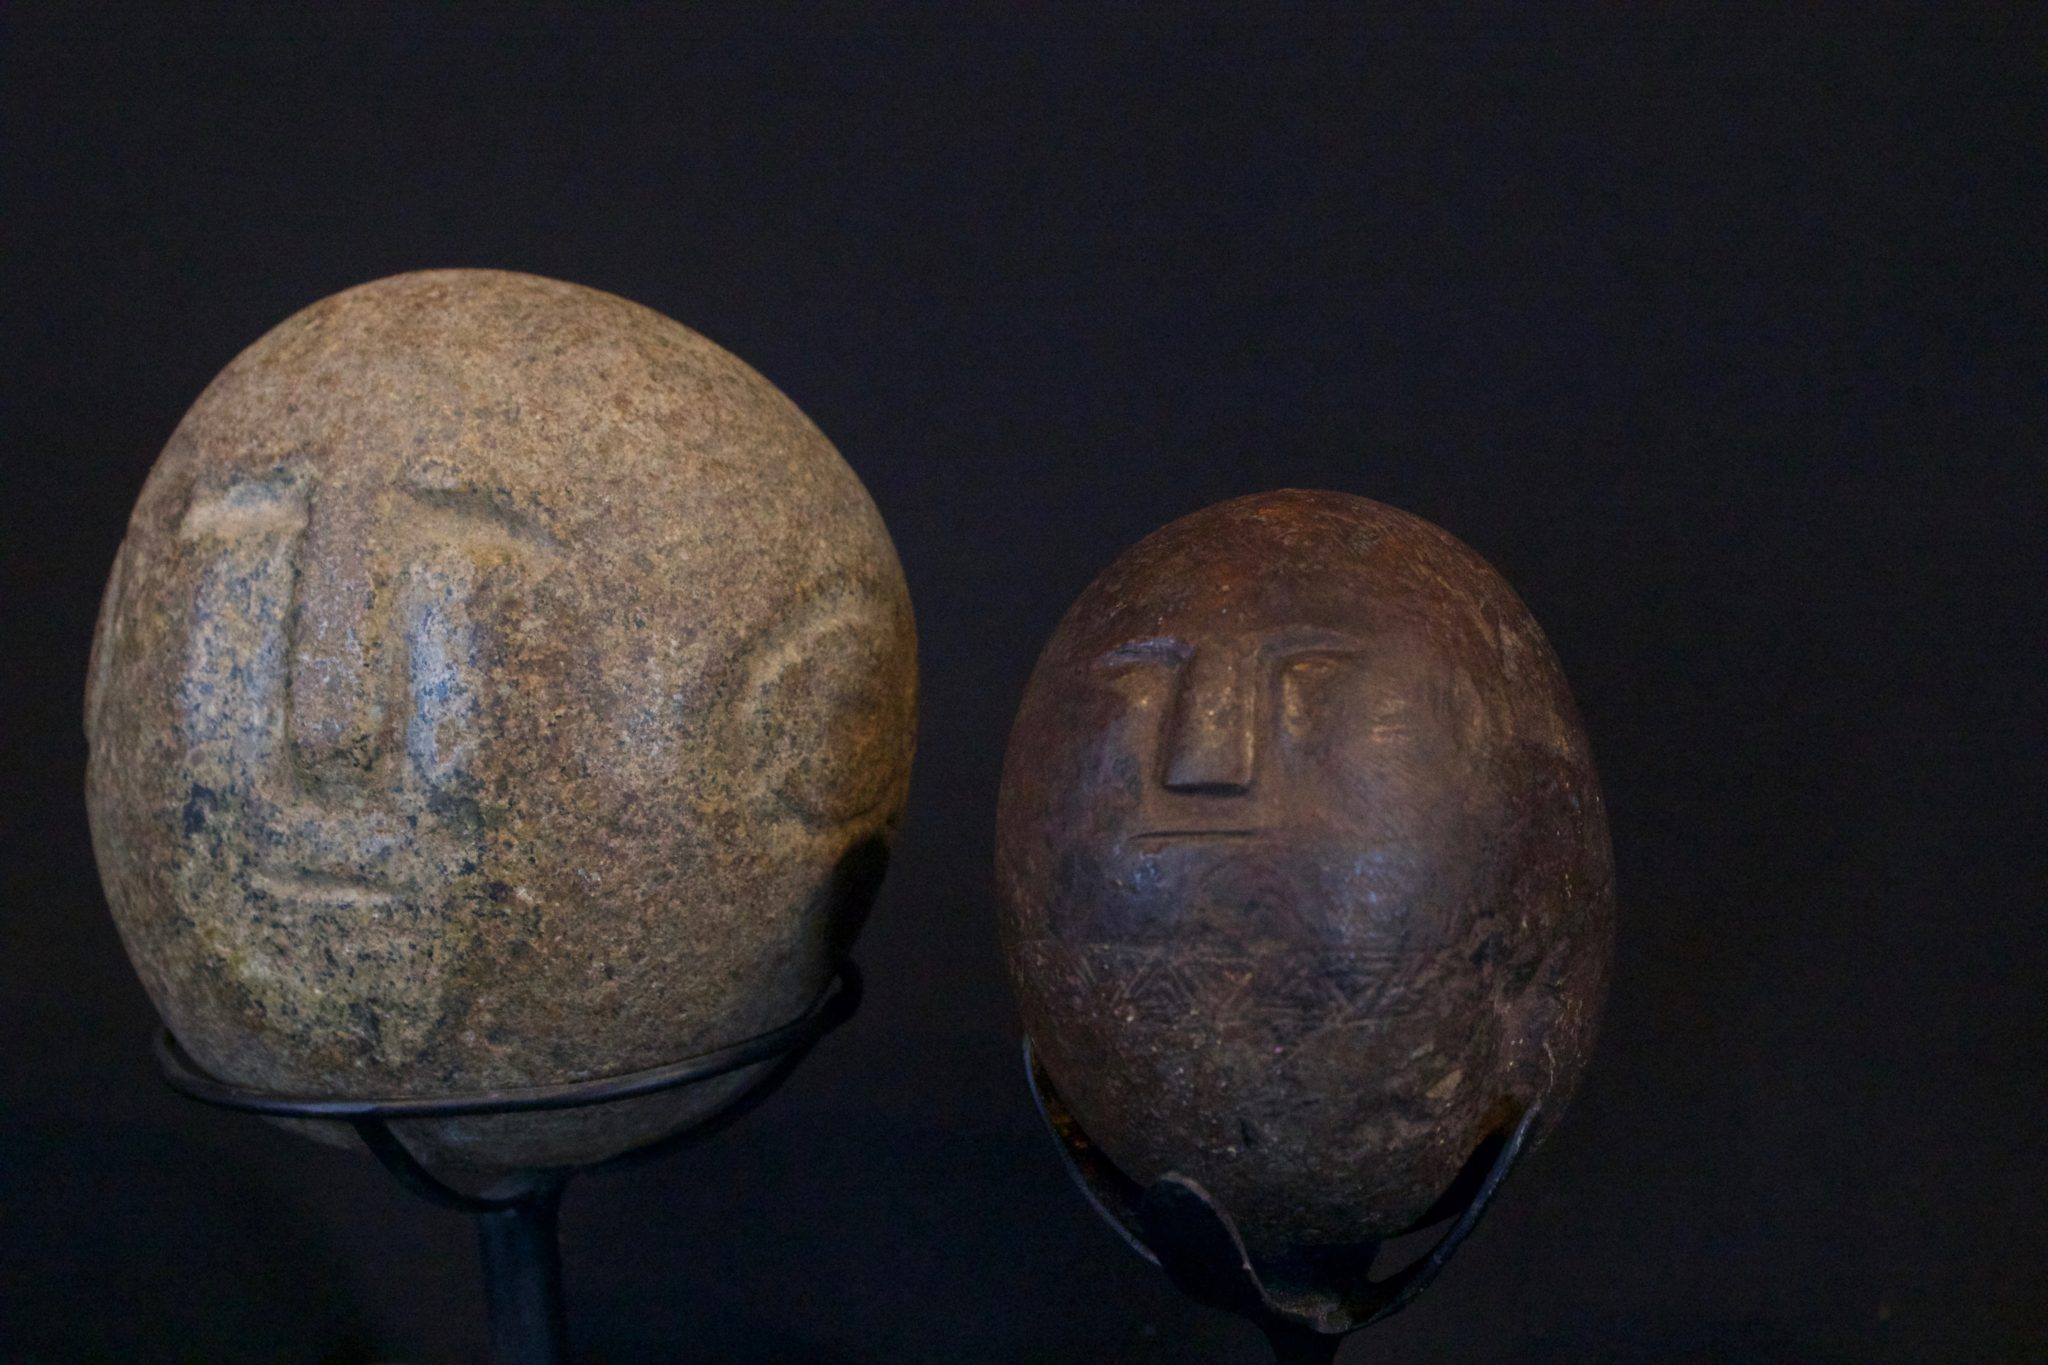 "Healing Figures, Timor Island, Lesser Sunda Islands, Indonesia, Mid to late 19th c. Stone, patinated with use and age. Used in healing rituals. (left - late 19th c, 3 ¾"" x 2 ¾"" x 3 ¼"", sold); (right - mid 19th c, 3 ¾"" x 2 ¾"" x 3 ¼"", sold)"